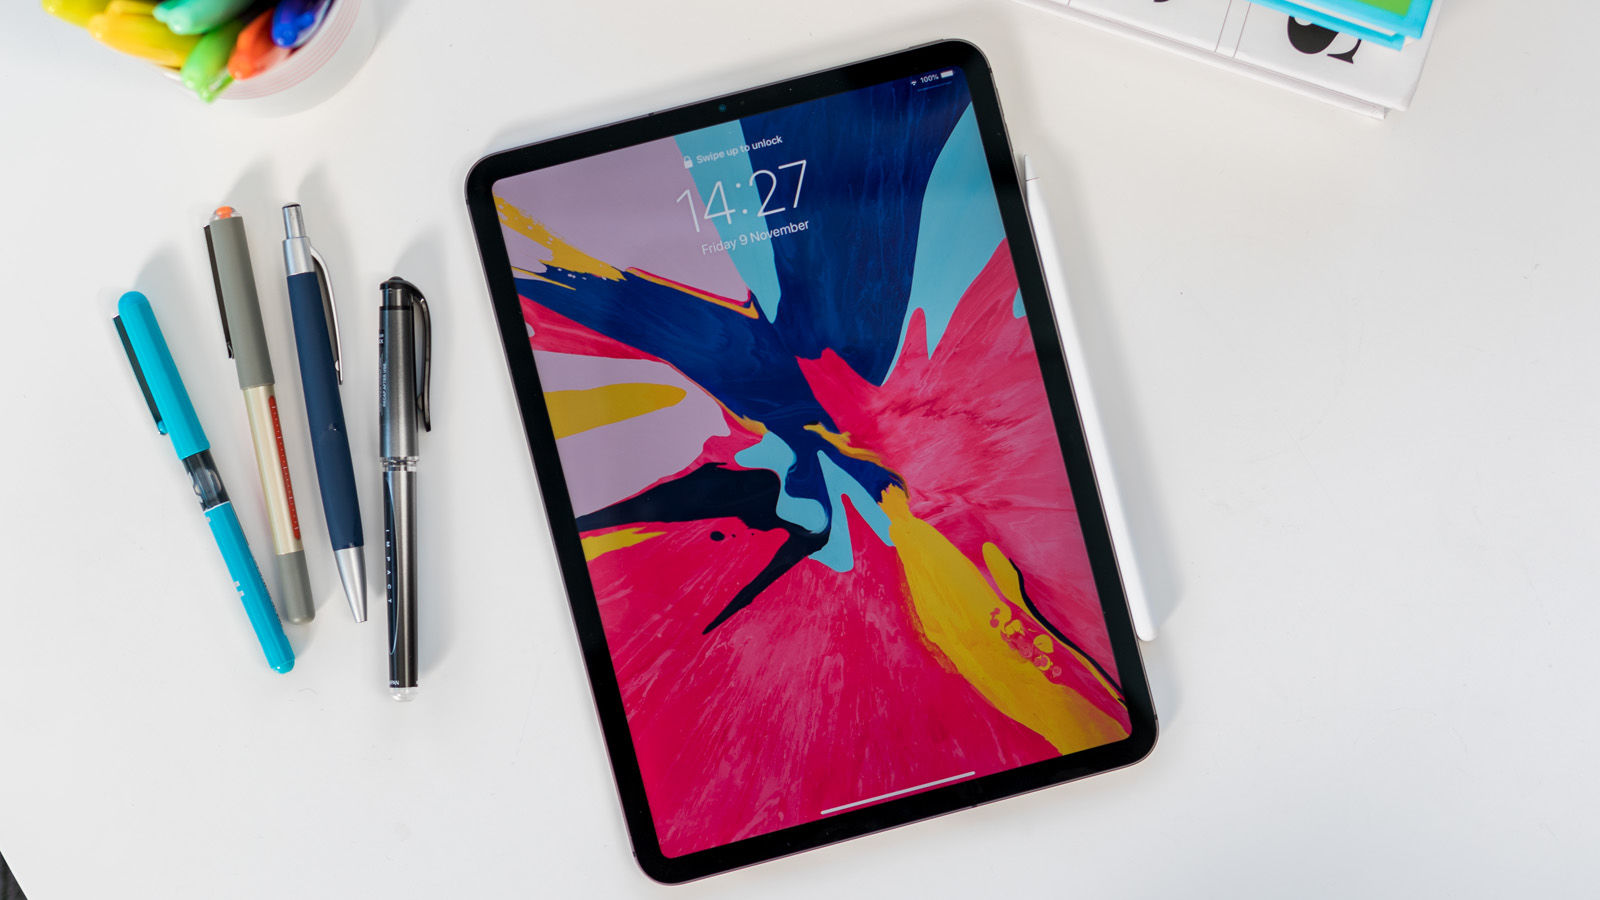 ipad pro 2018 11 inch review 11